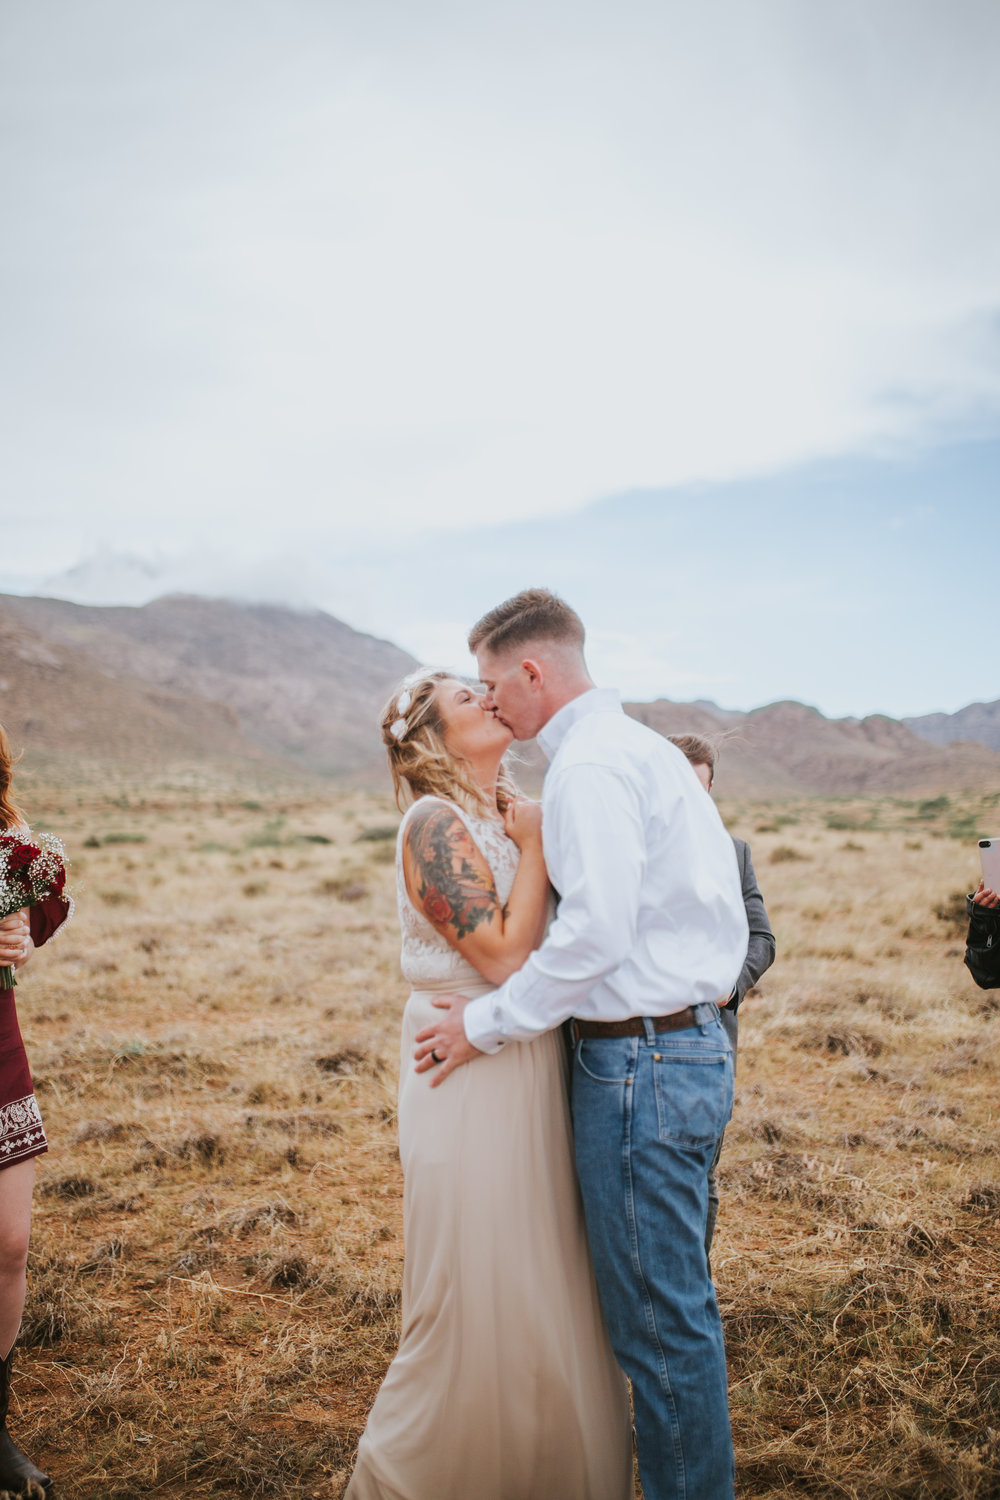 el-paso-texas-wedding-photographer-23